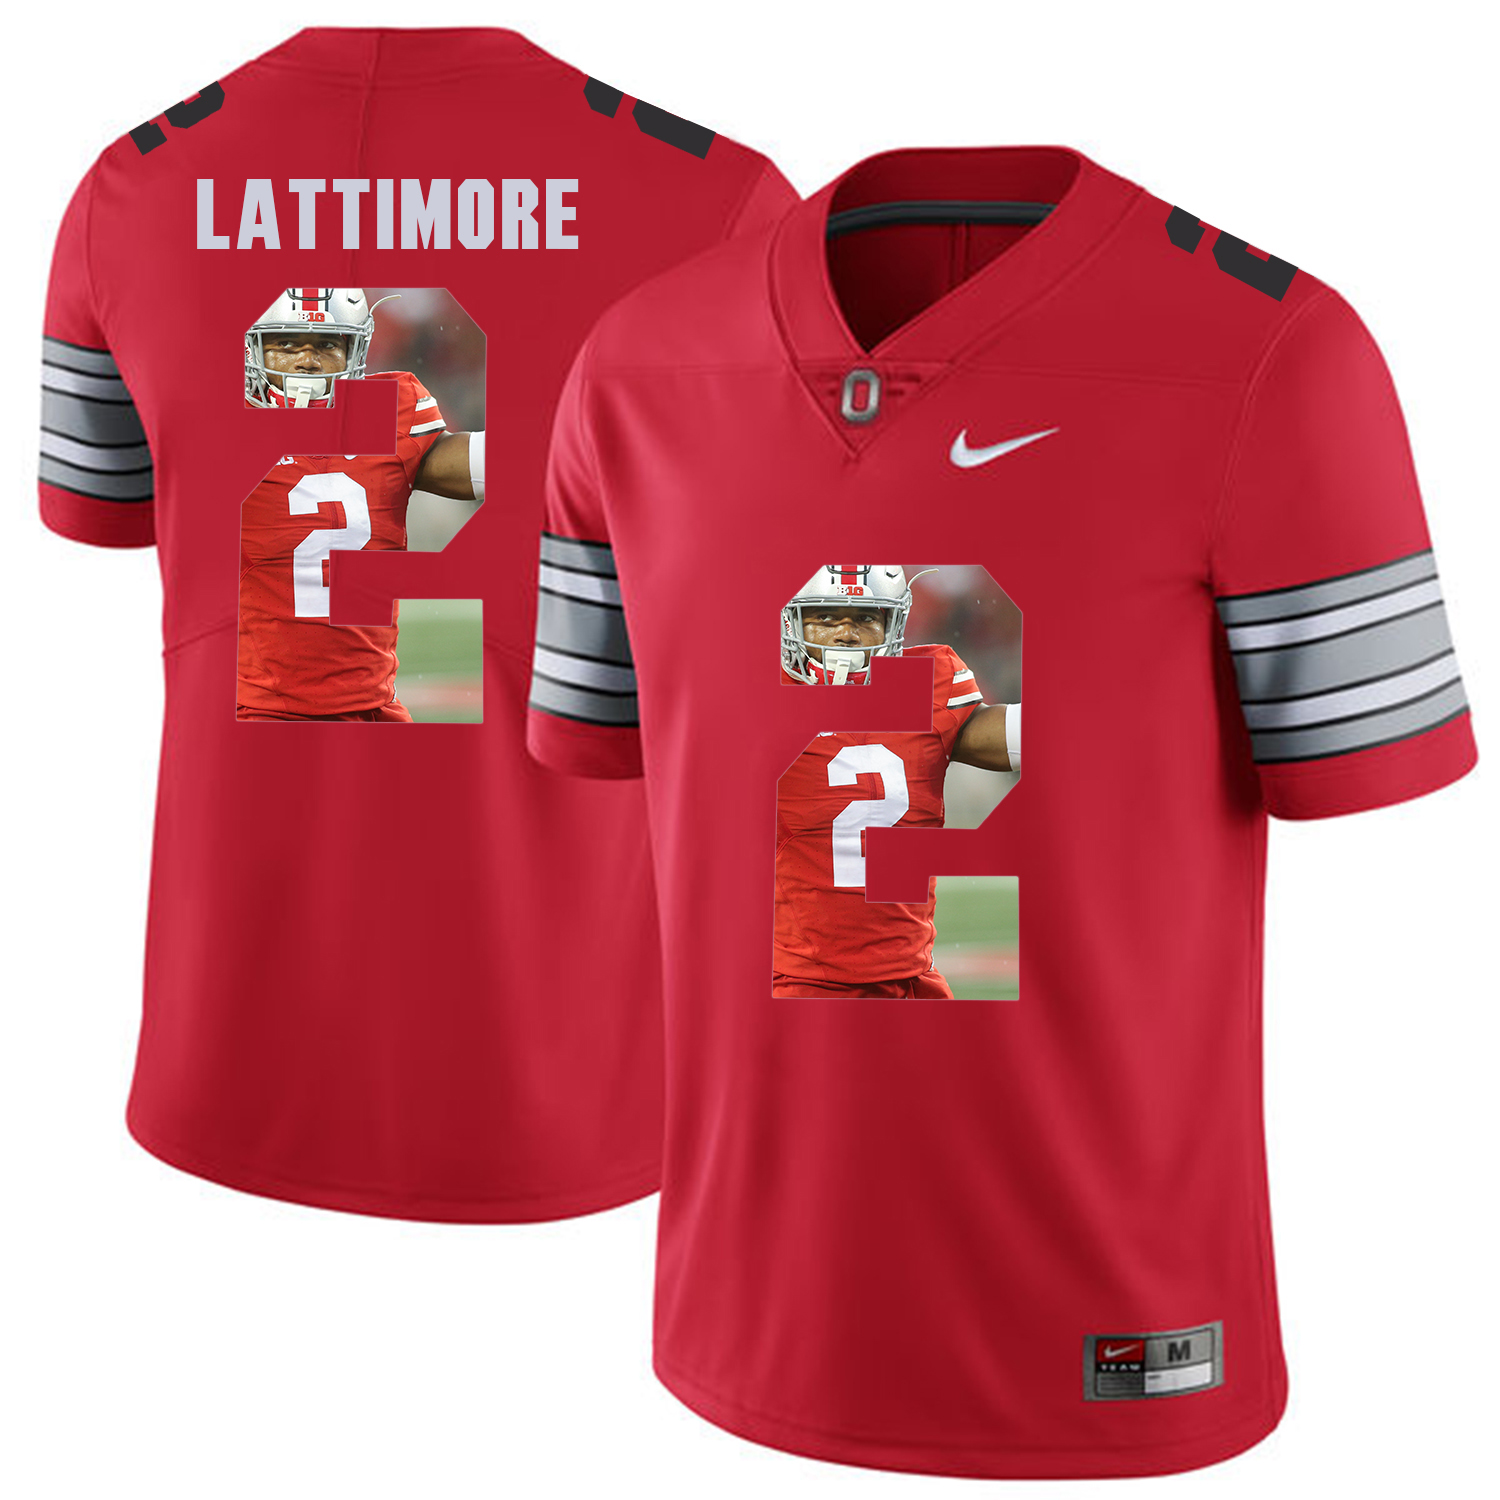 Men Ohio State 2 Lattimore Red Fashion Edition Customized NCAA Jerseys